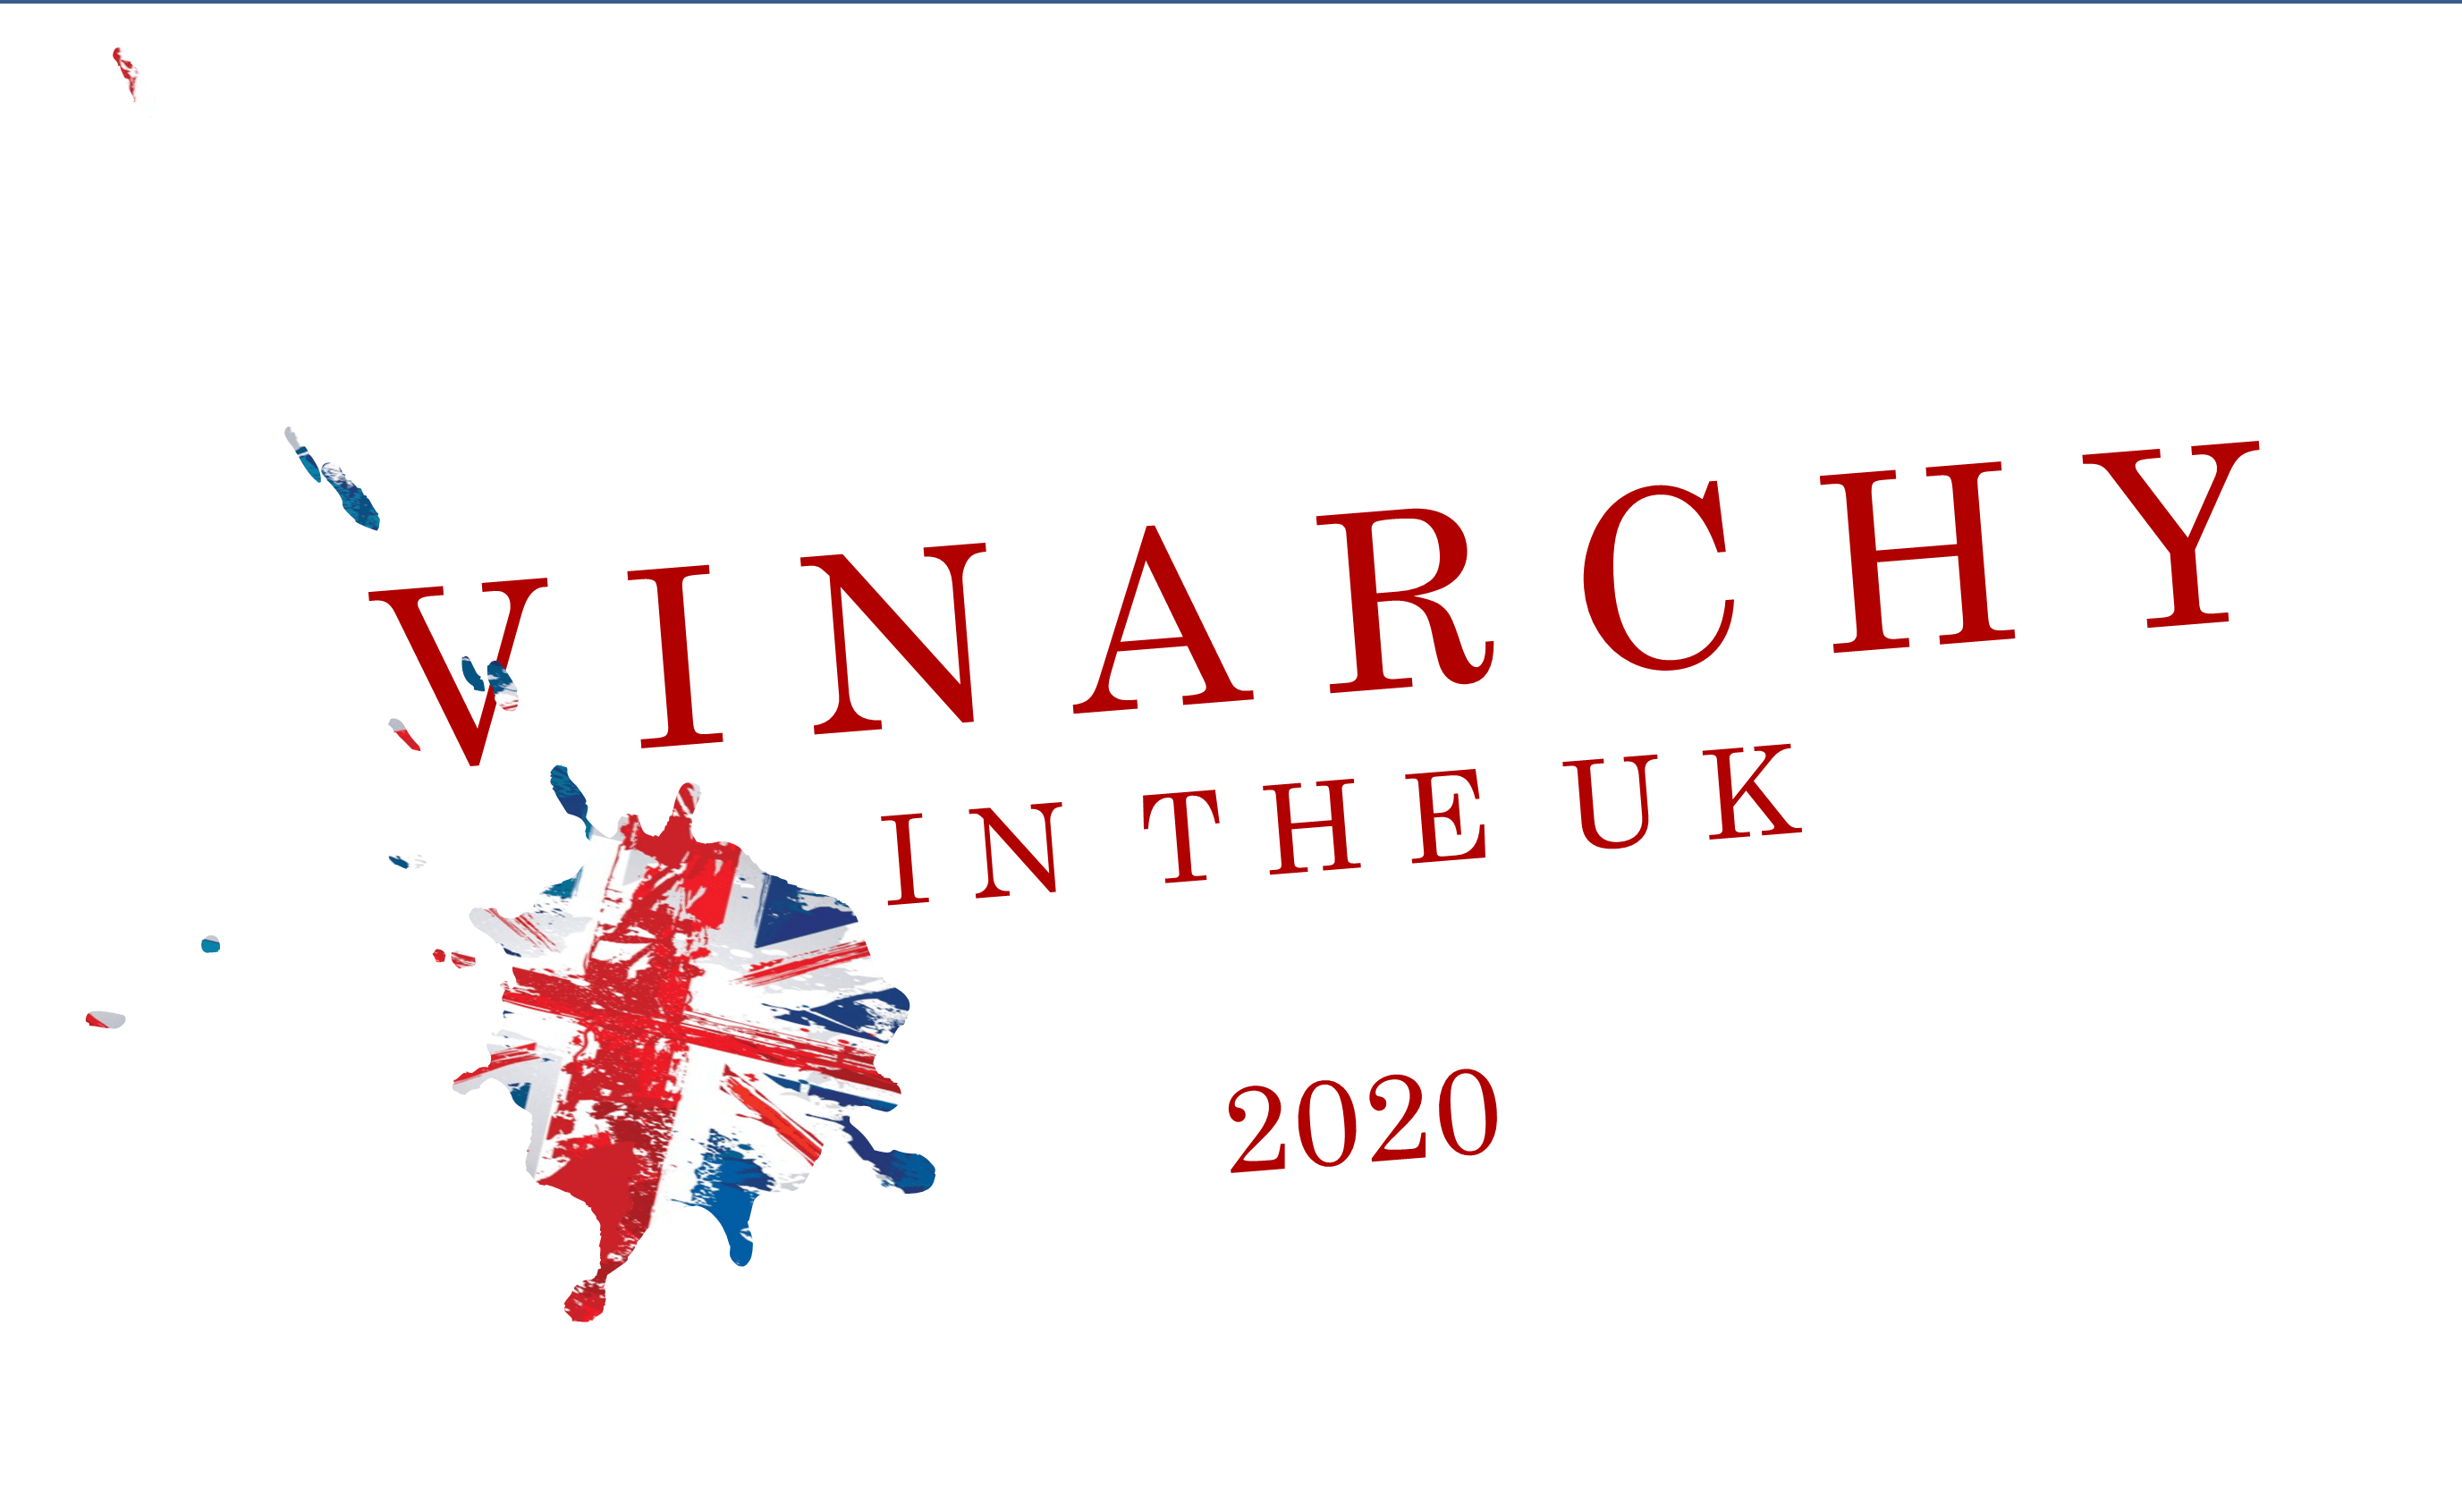 Vinarchy in the UK